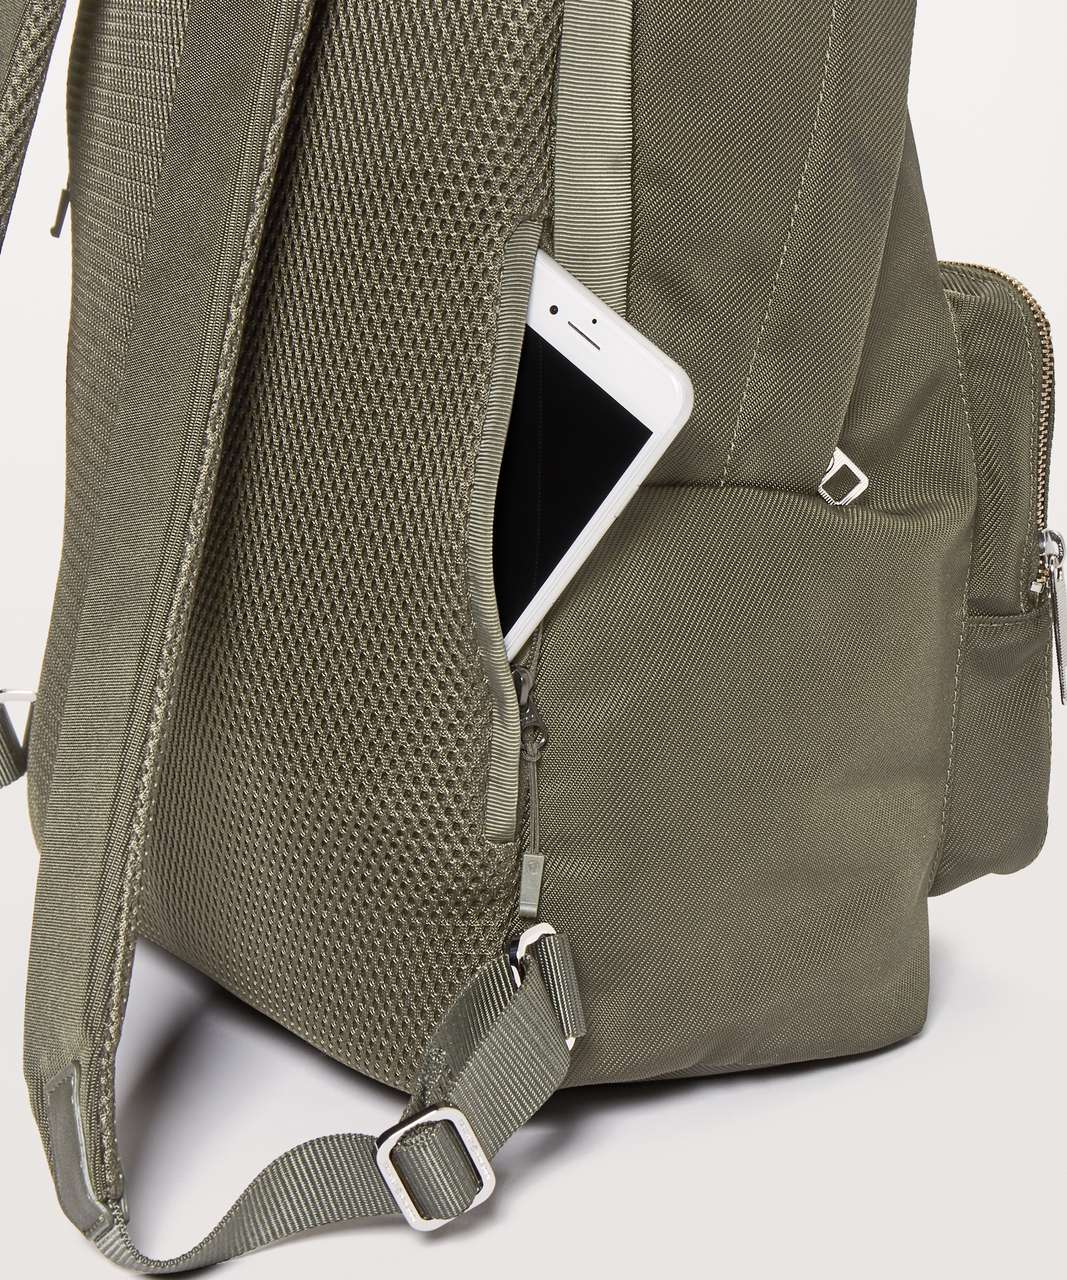 Lululemon Everywhere Backpack *17L - Dark Olive